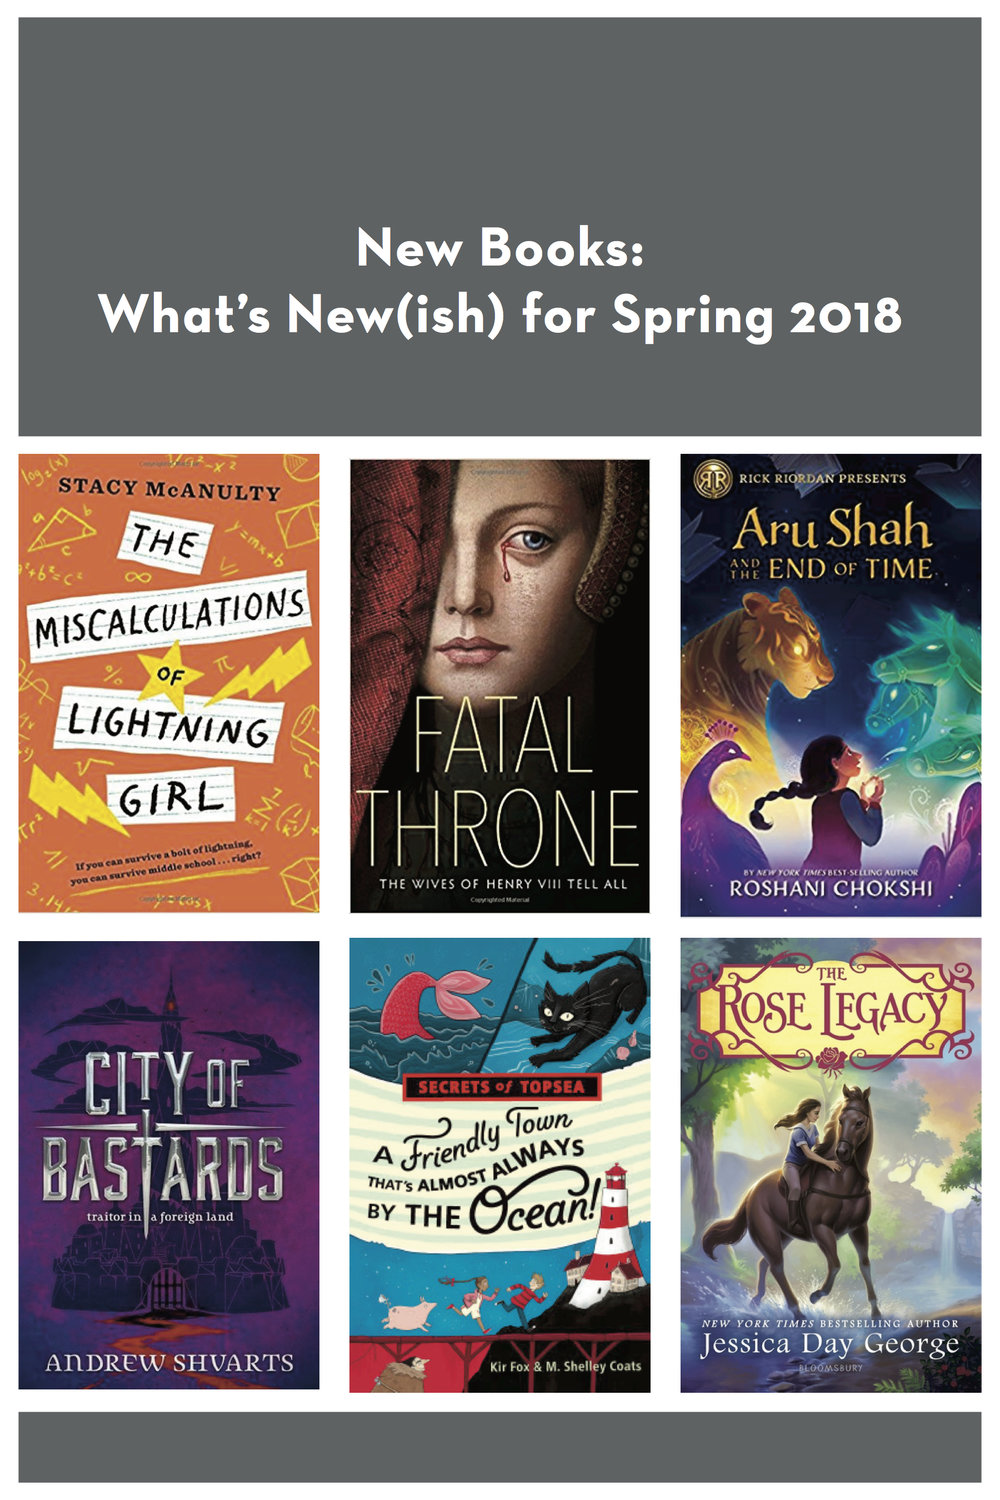 What's new on bookshelves this spring